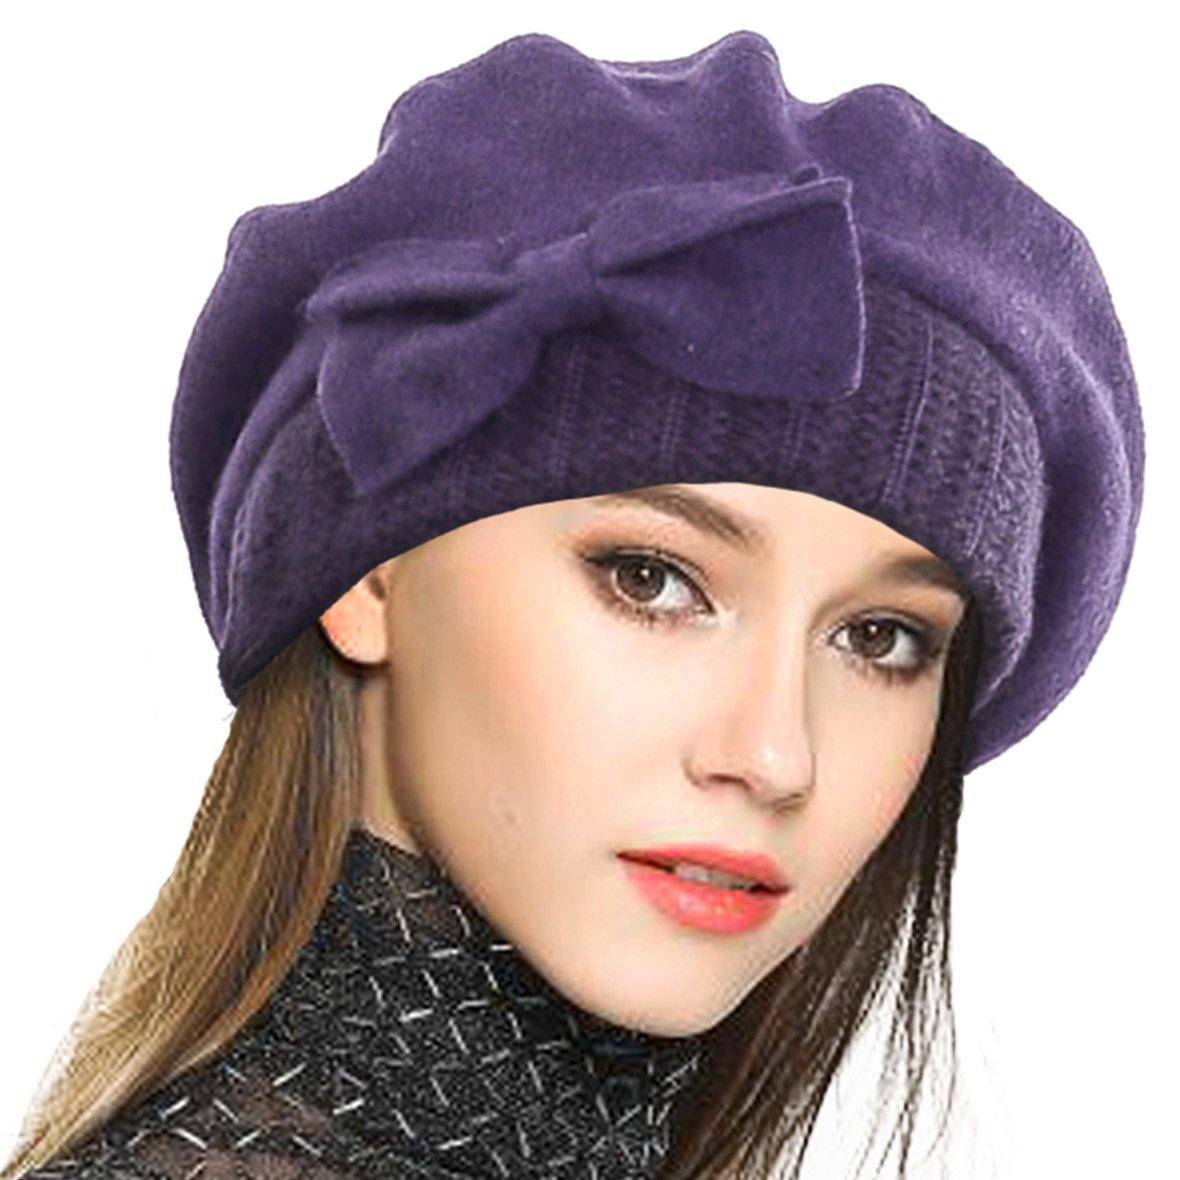 b1c2badcd4dfa8 VECRY Lady French Beret 100% Wool Beret Floral Dress Beanie Winter Hat  product image